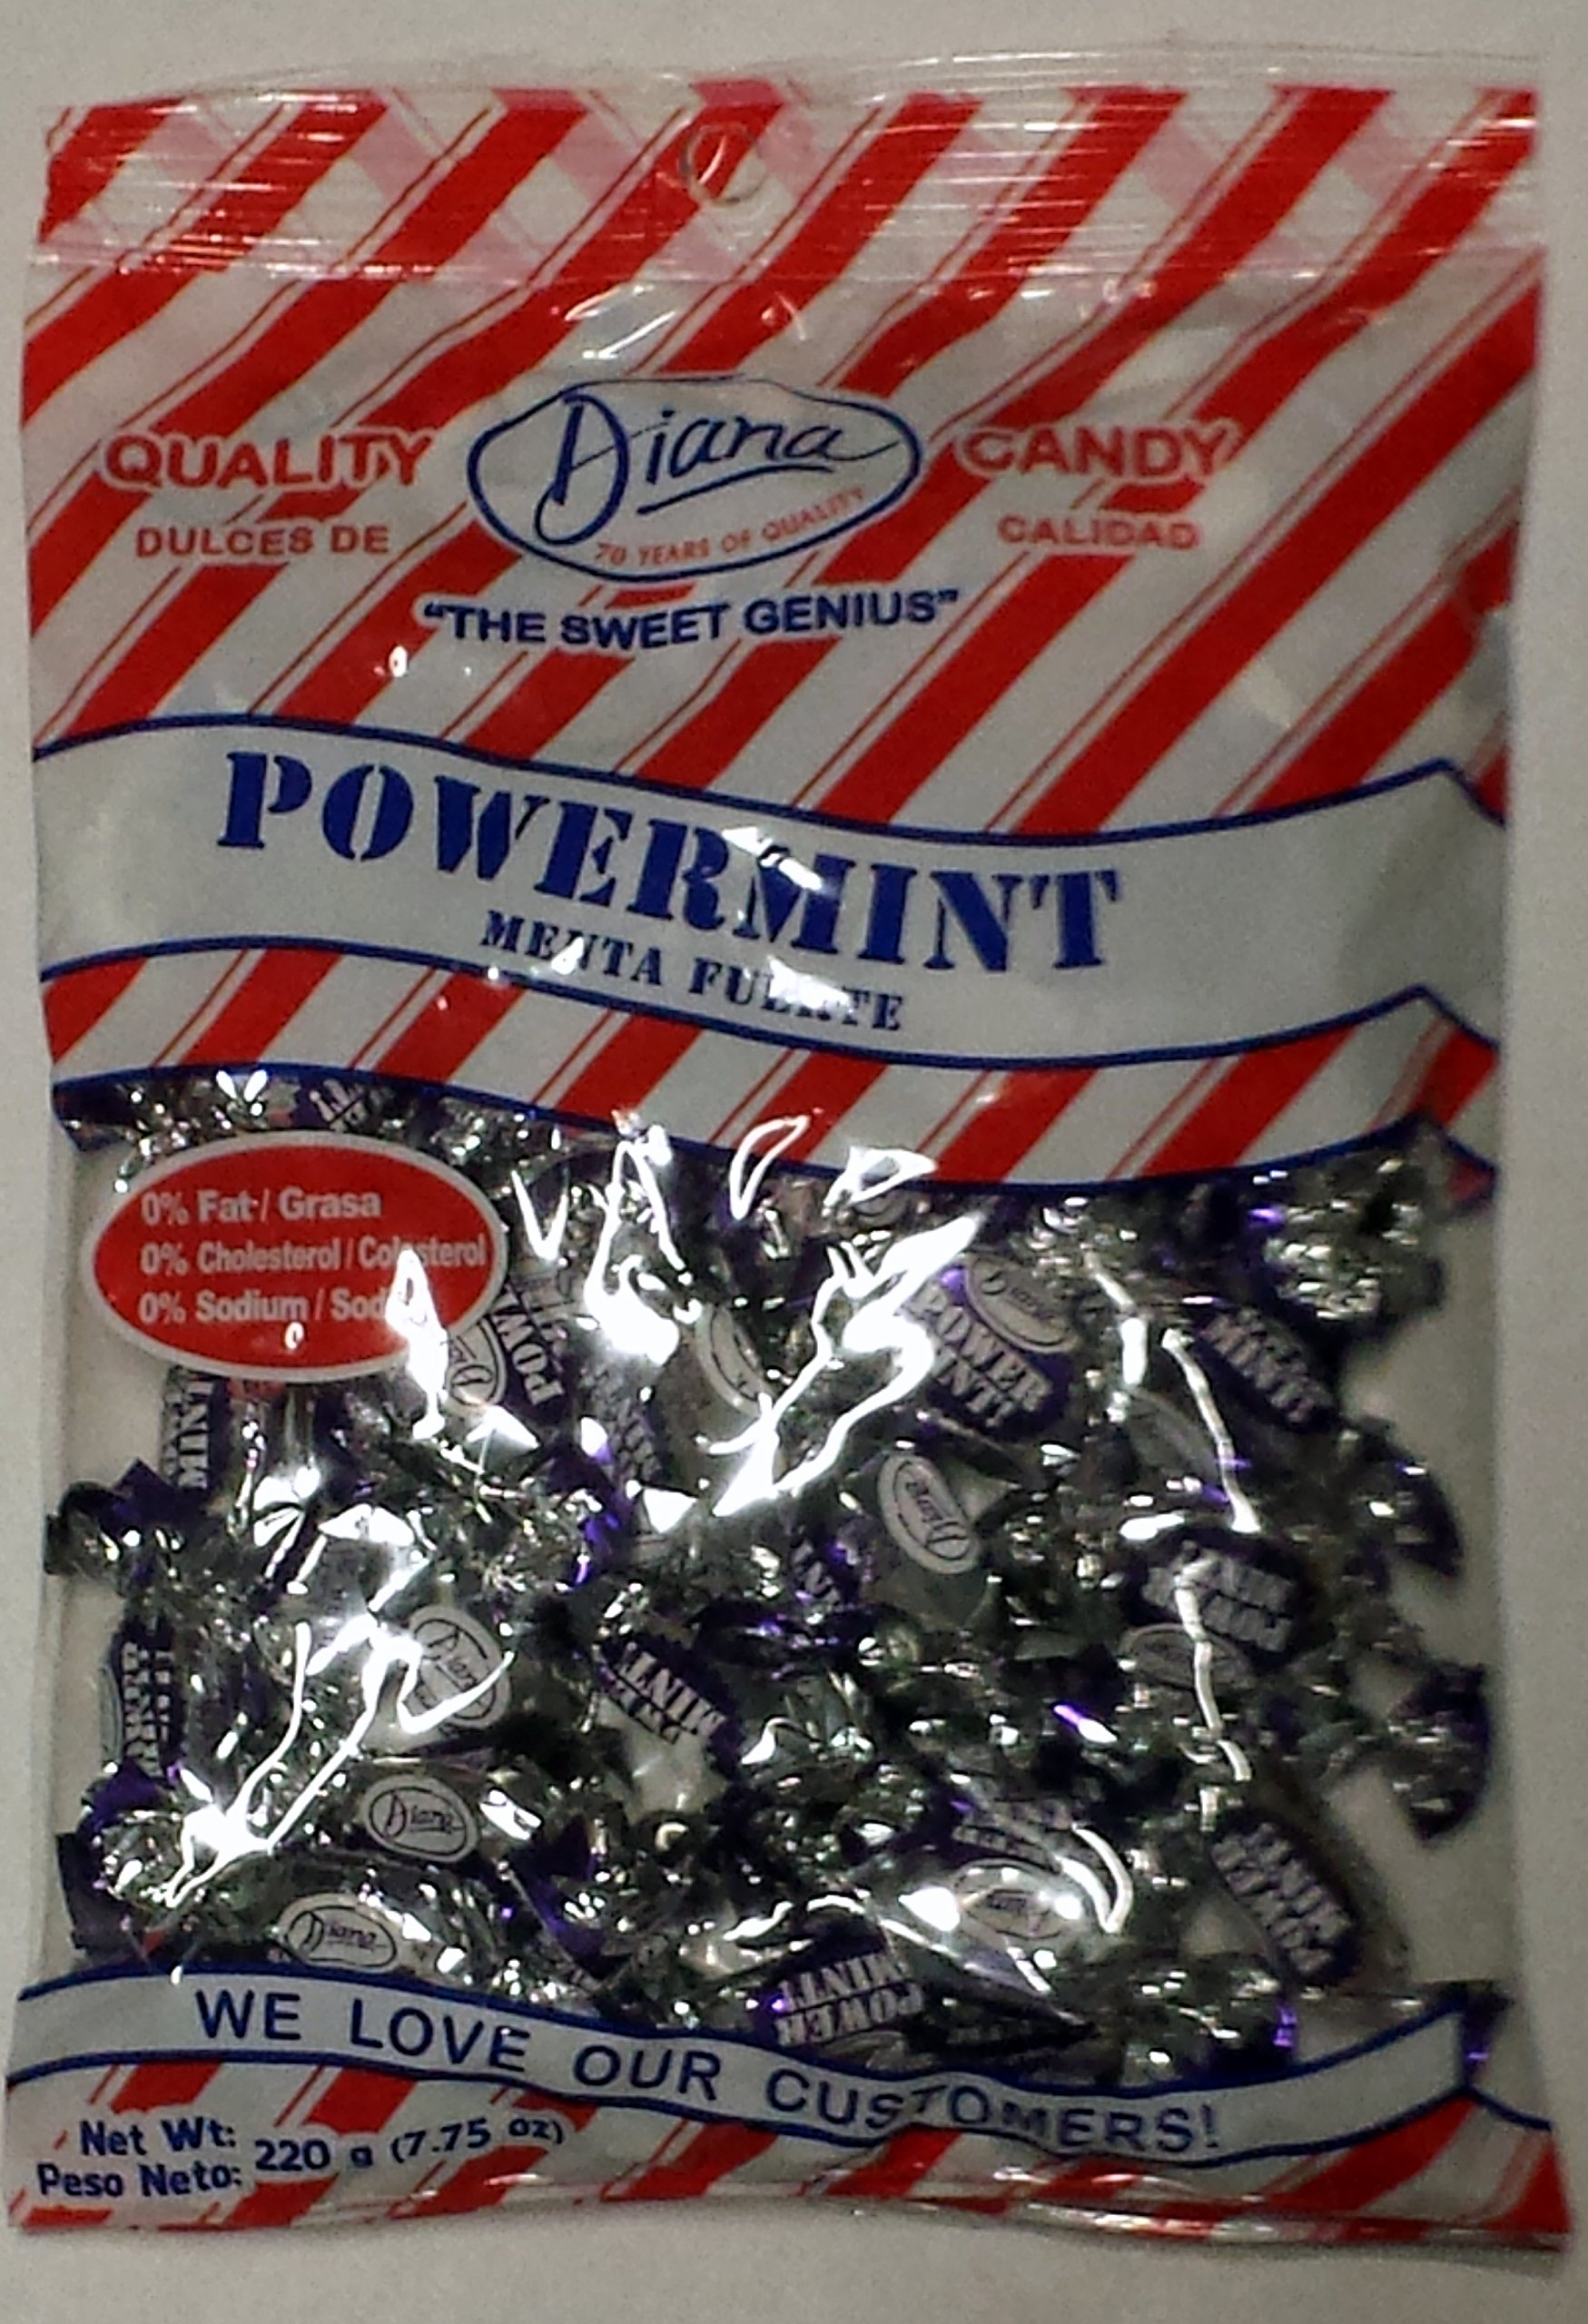 Powermint Candy by Diana - 220g - 24pack by Diana (Image #1)